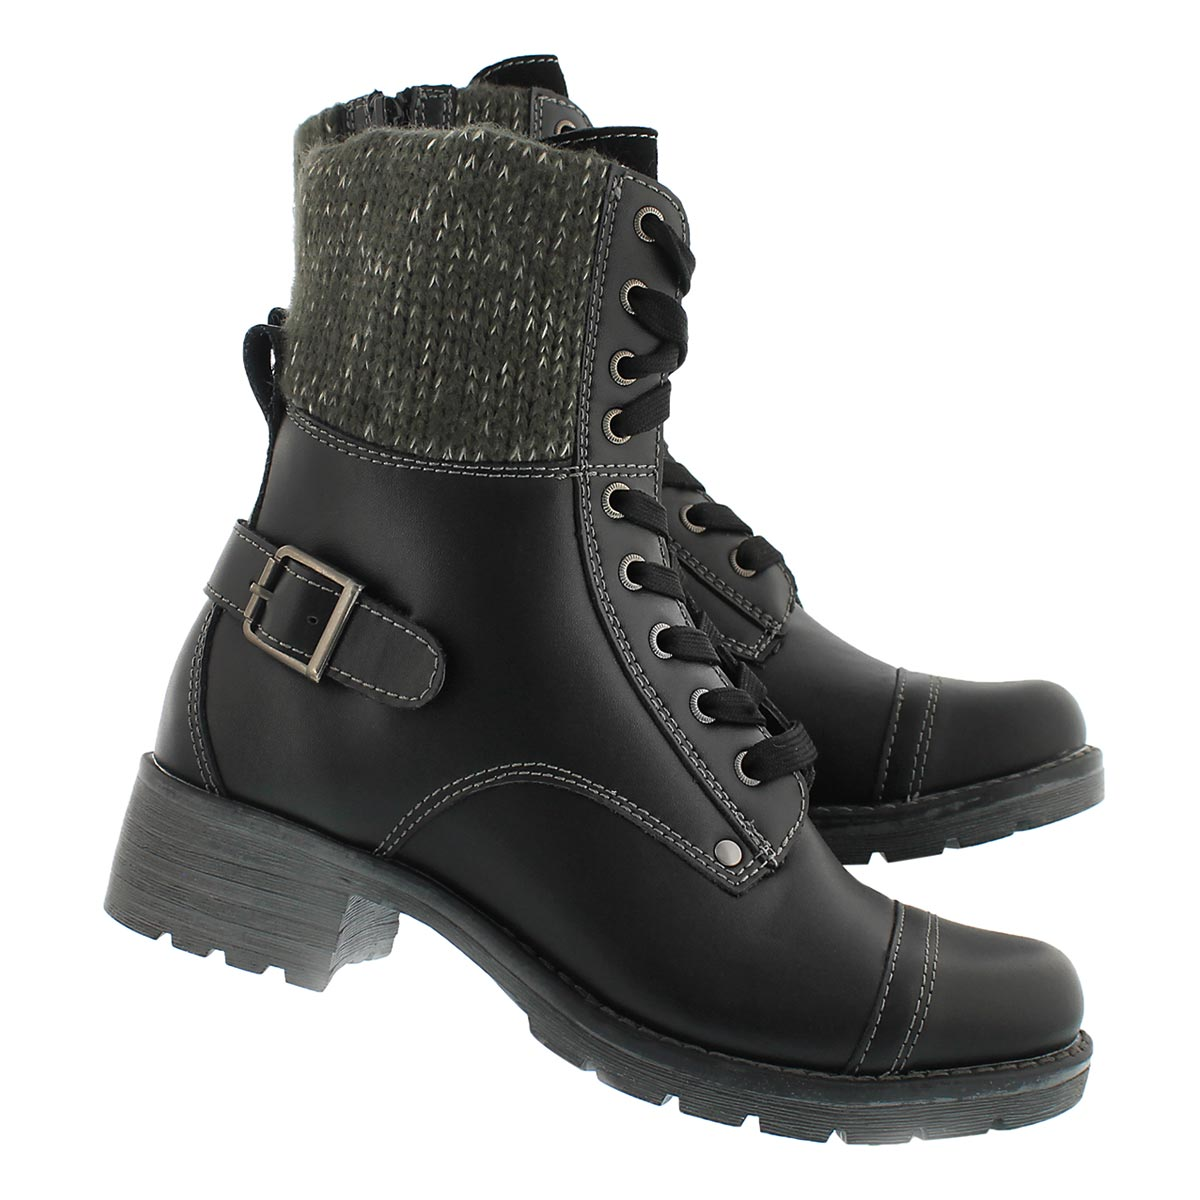 Lds Deedee blk knit top combat boot